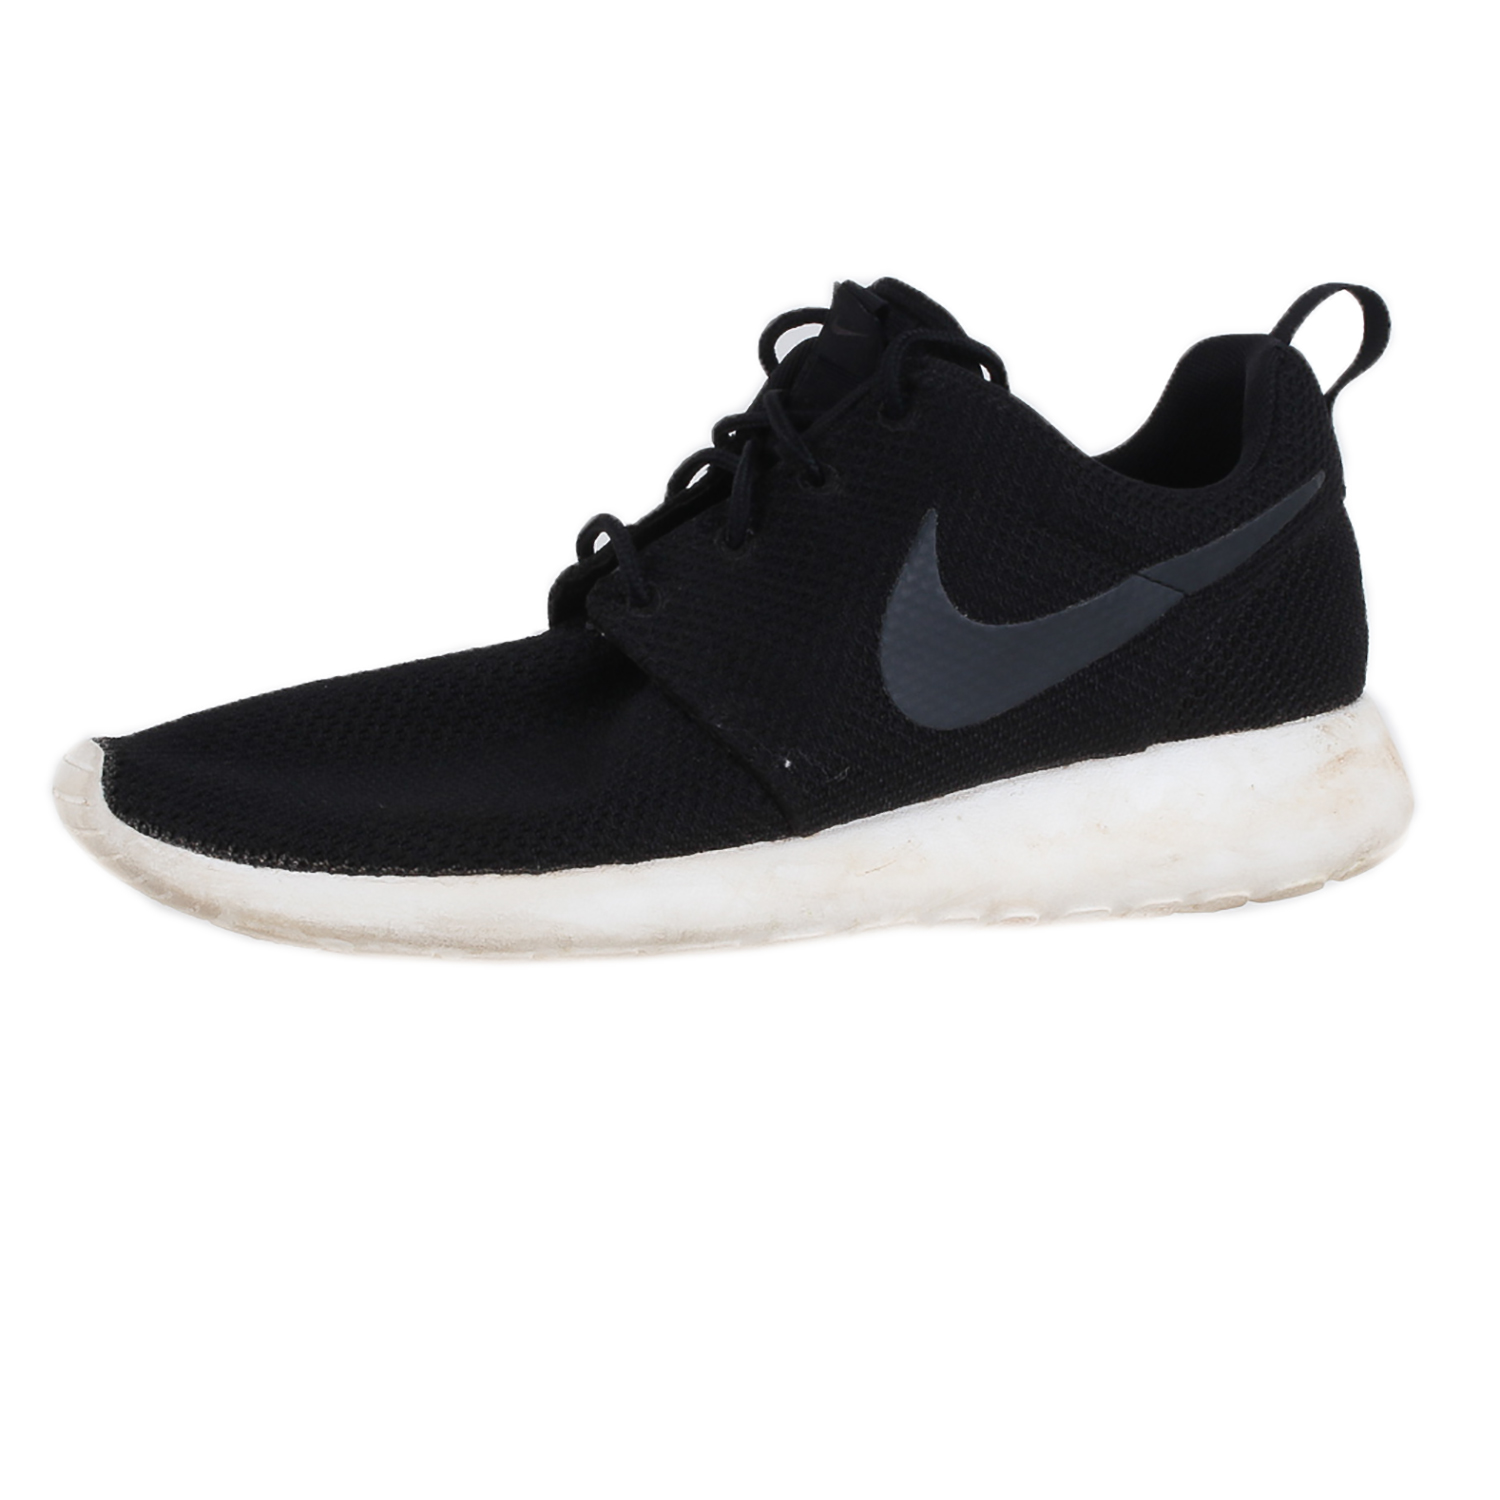 330d6364784b3 Details about Nike Mens Roshe One Running Shoes 511881-010 Black Sz 9 M